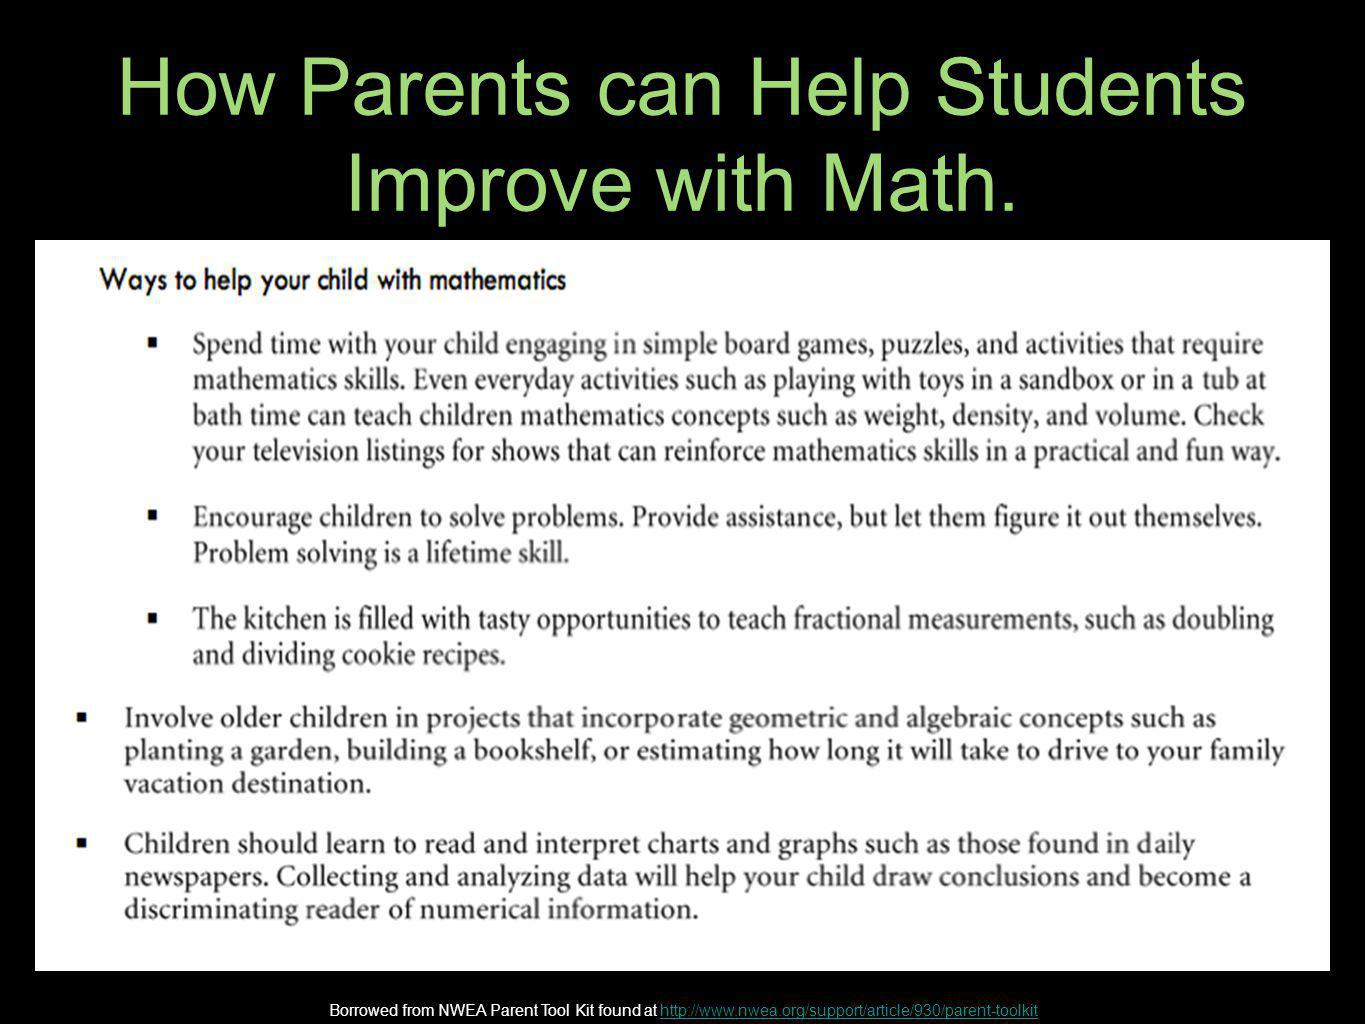 How Parents can Help Students Improve with Math.